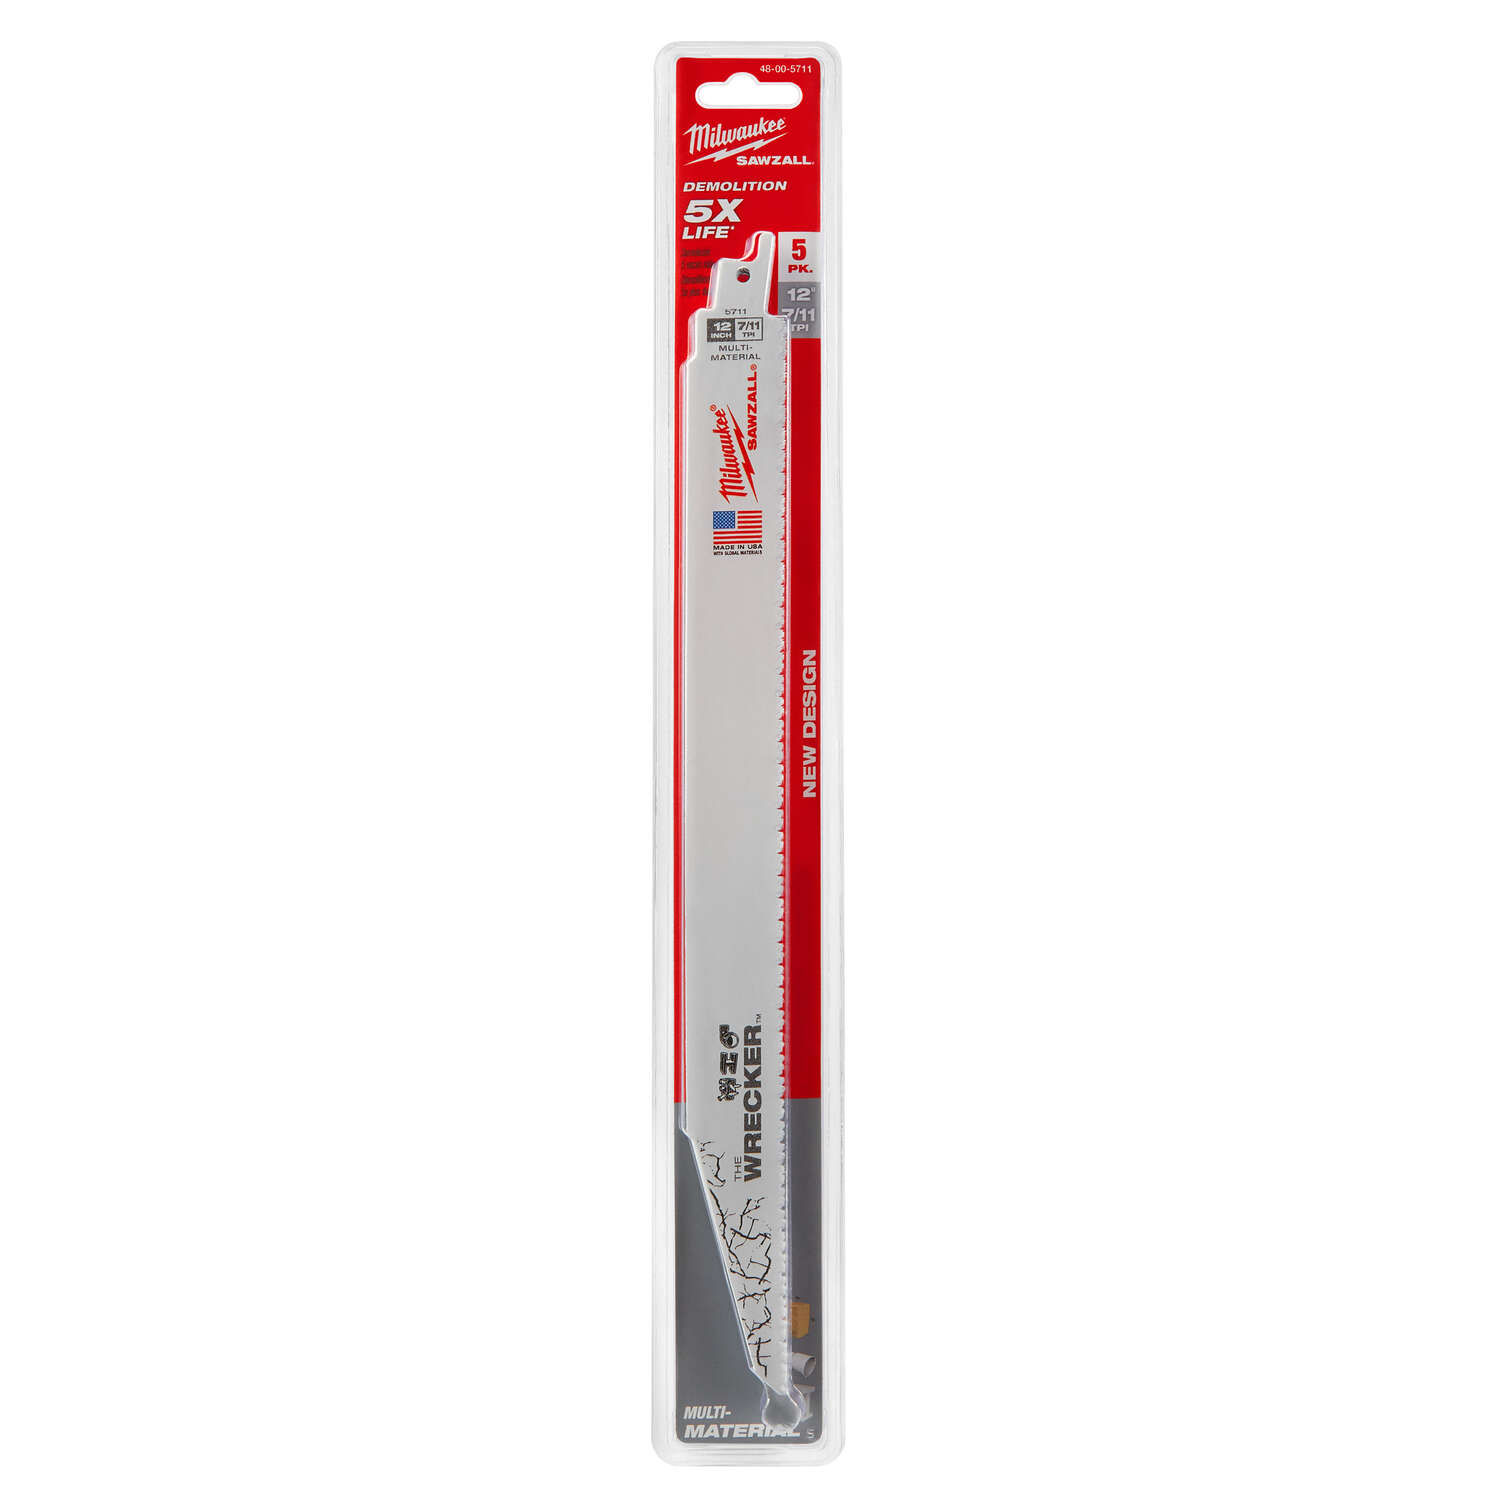 Milwaukee  The WRECKER  12 in. L x 1 in. W Bi-Metal  Demolition  Reciprocating Saw Blade  8 TPI 5 pk